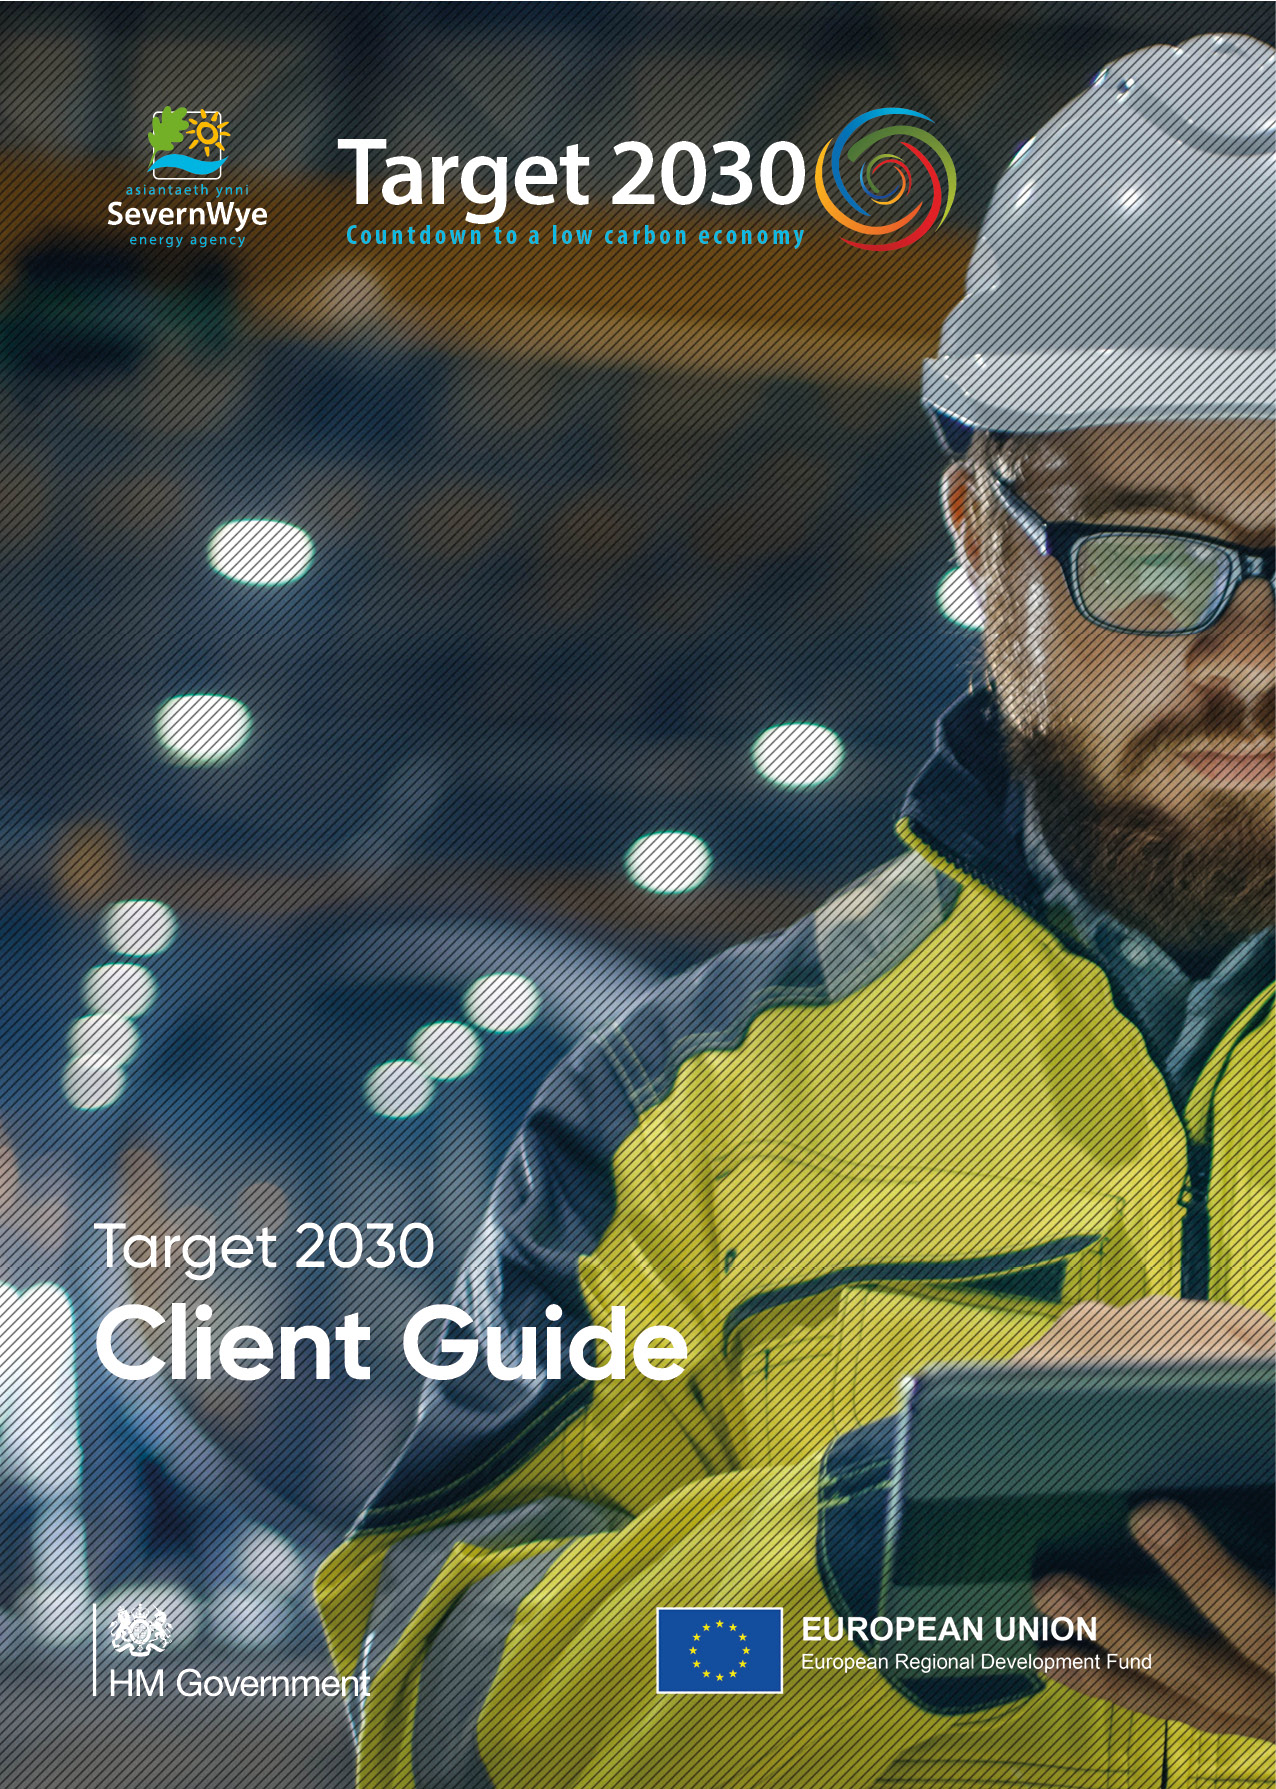 Cover of the Target 2030 Client Guide